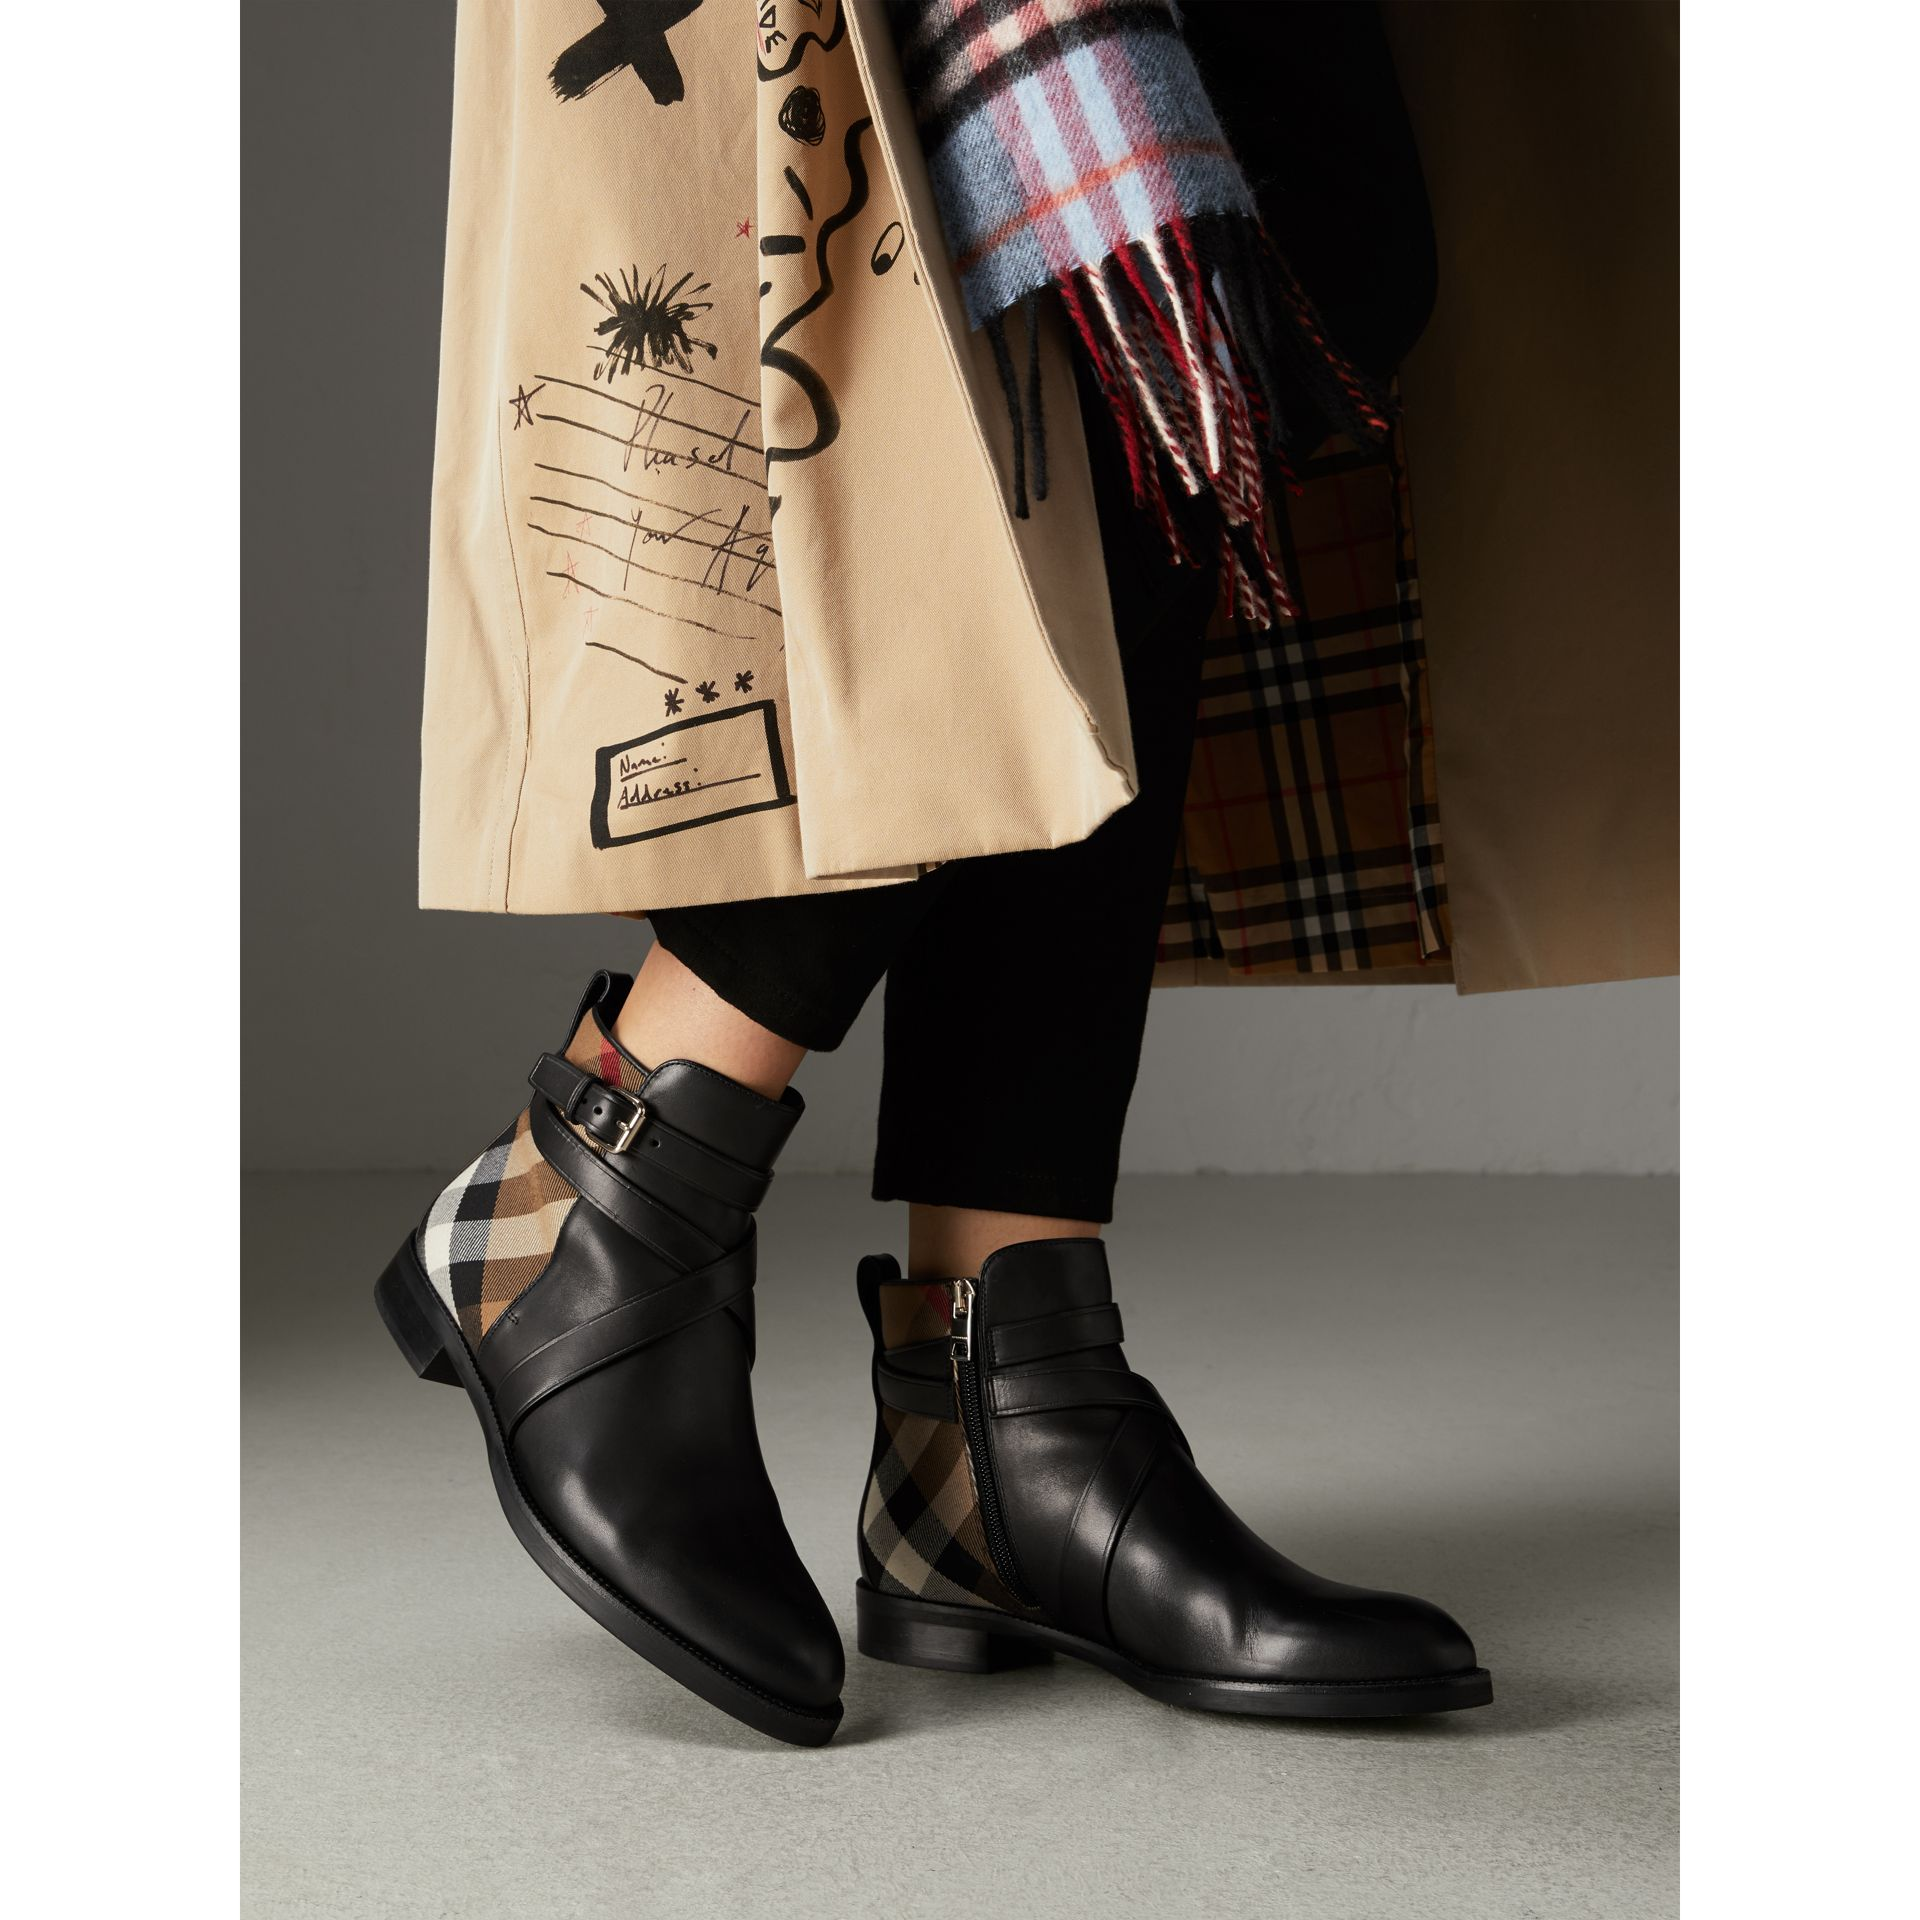 Strap Detail House Check and Leather Ankle Boots in Black - Women | Burberry United States - gallery image 2